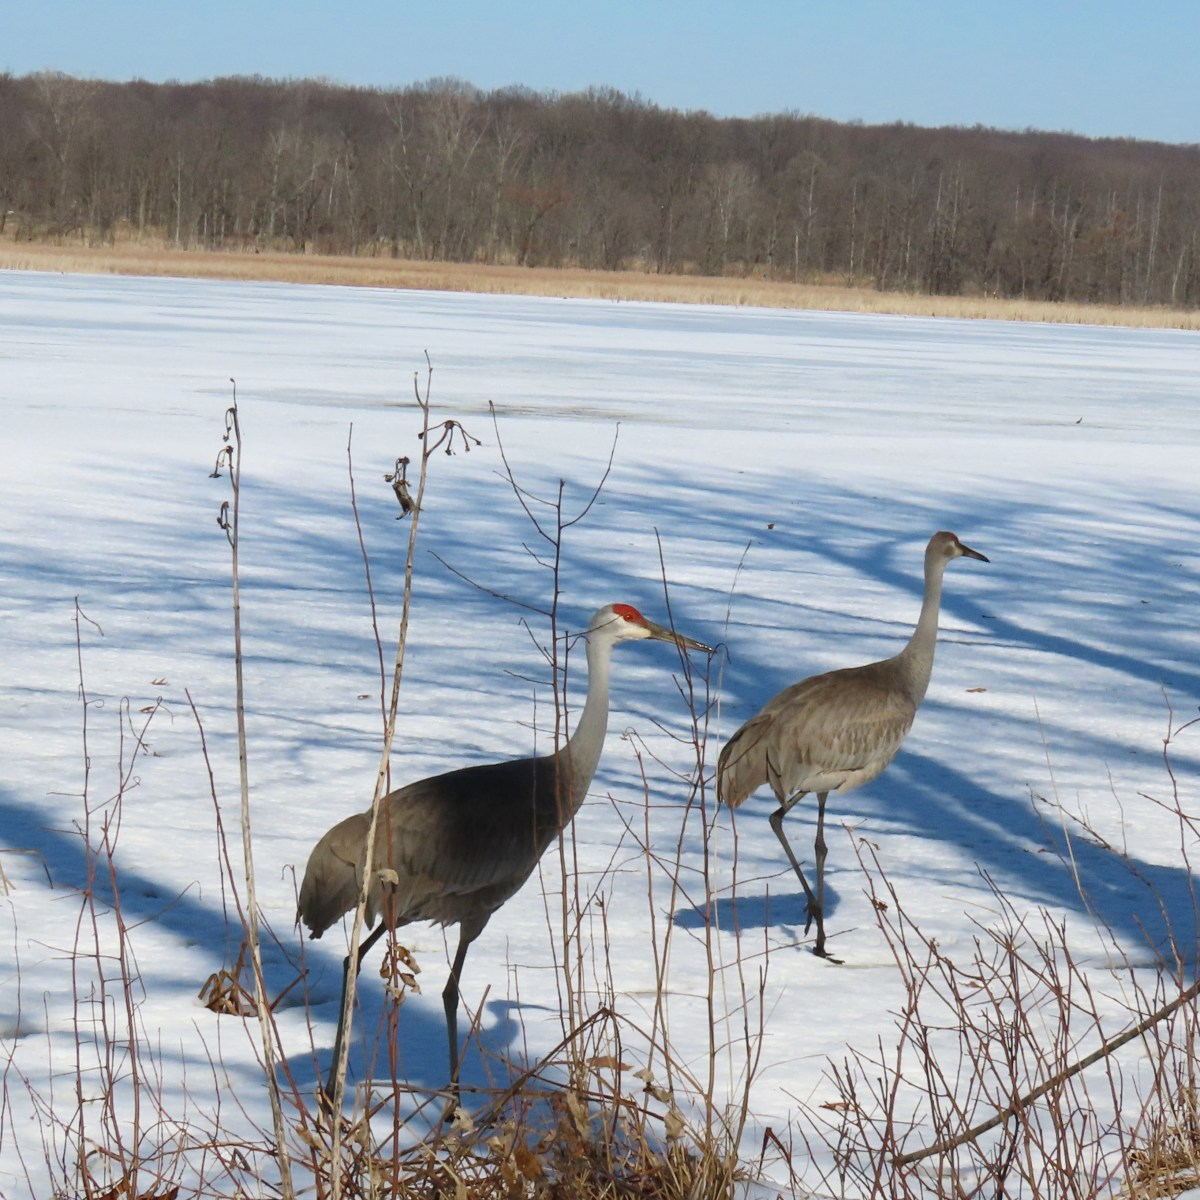 Two Sandhill Cranes walk on a frozen lake